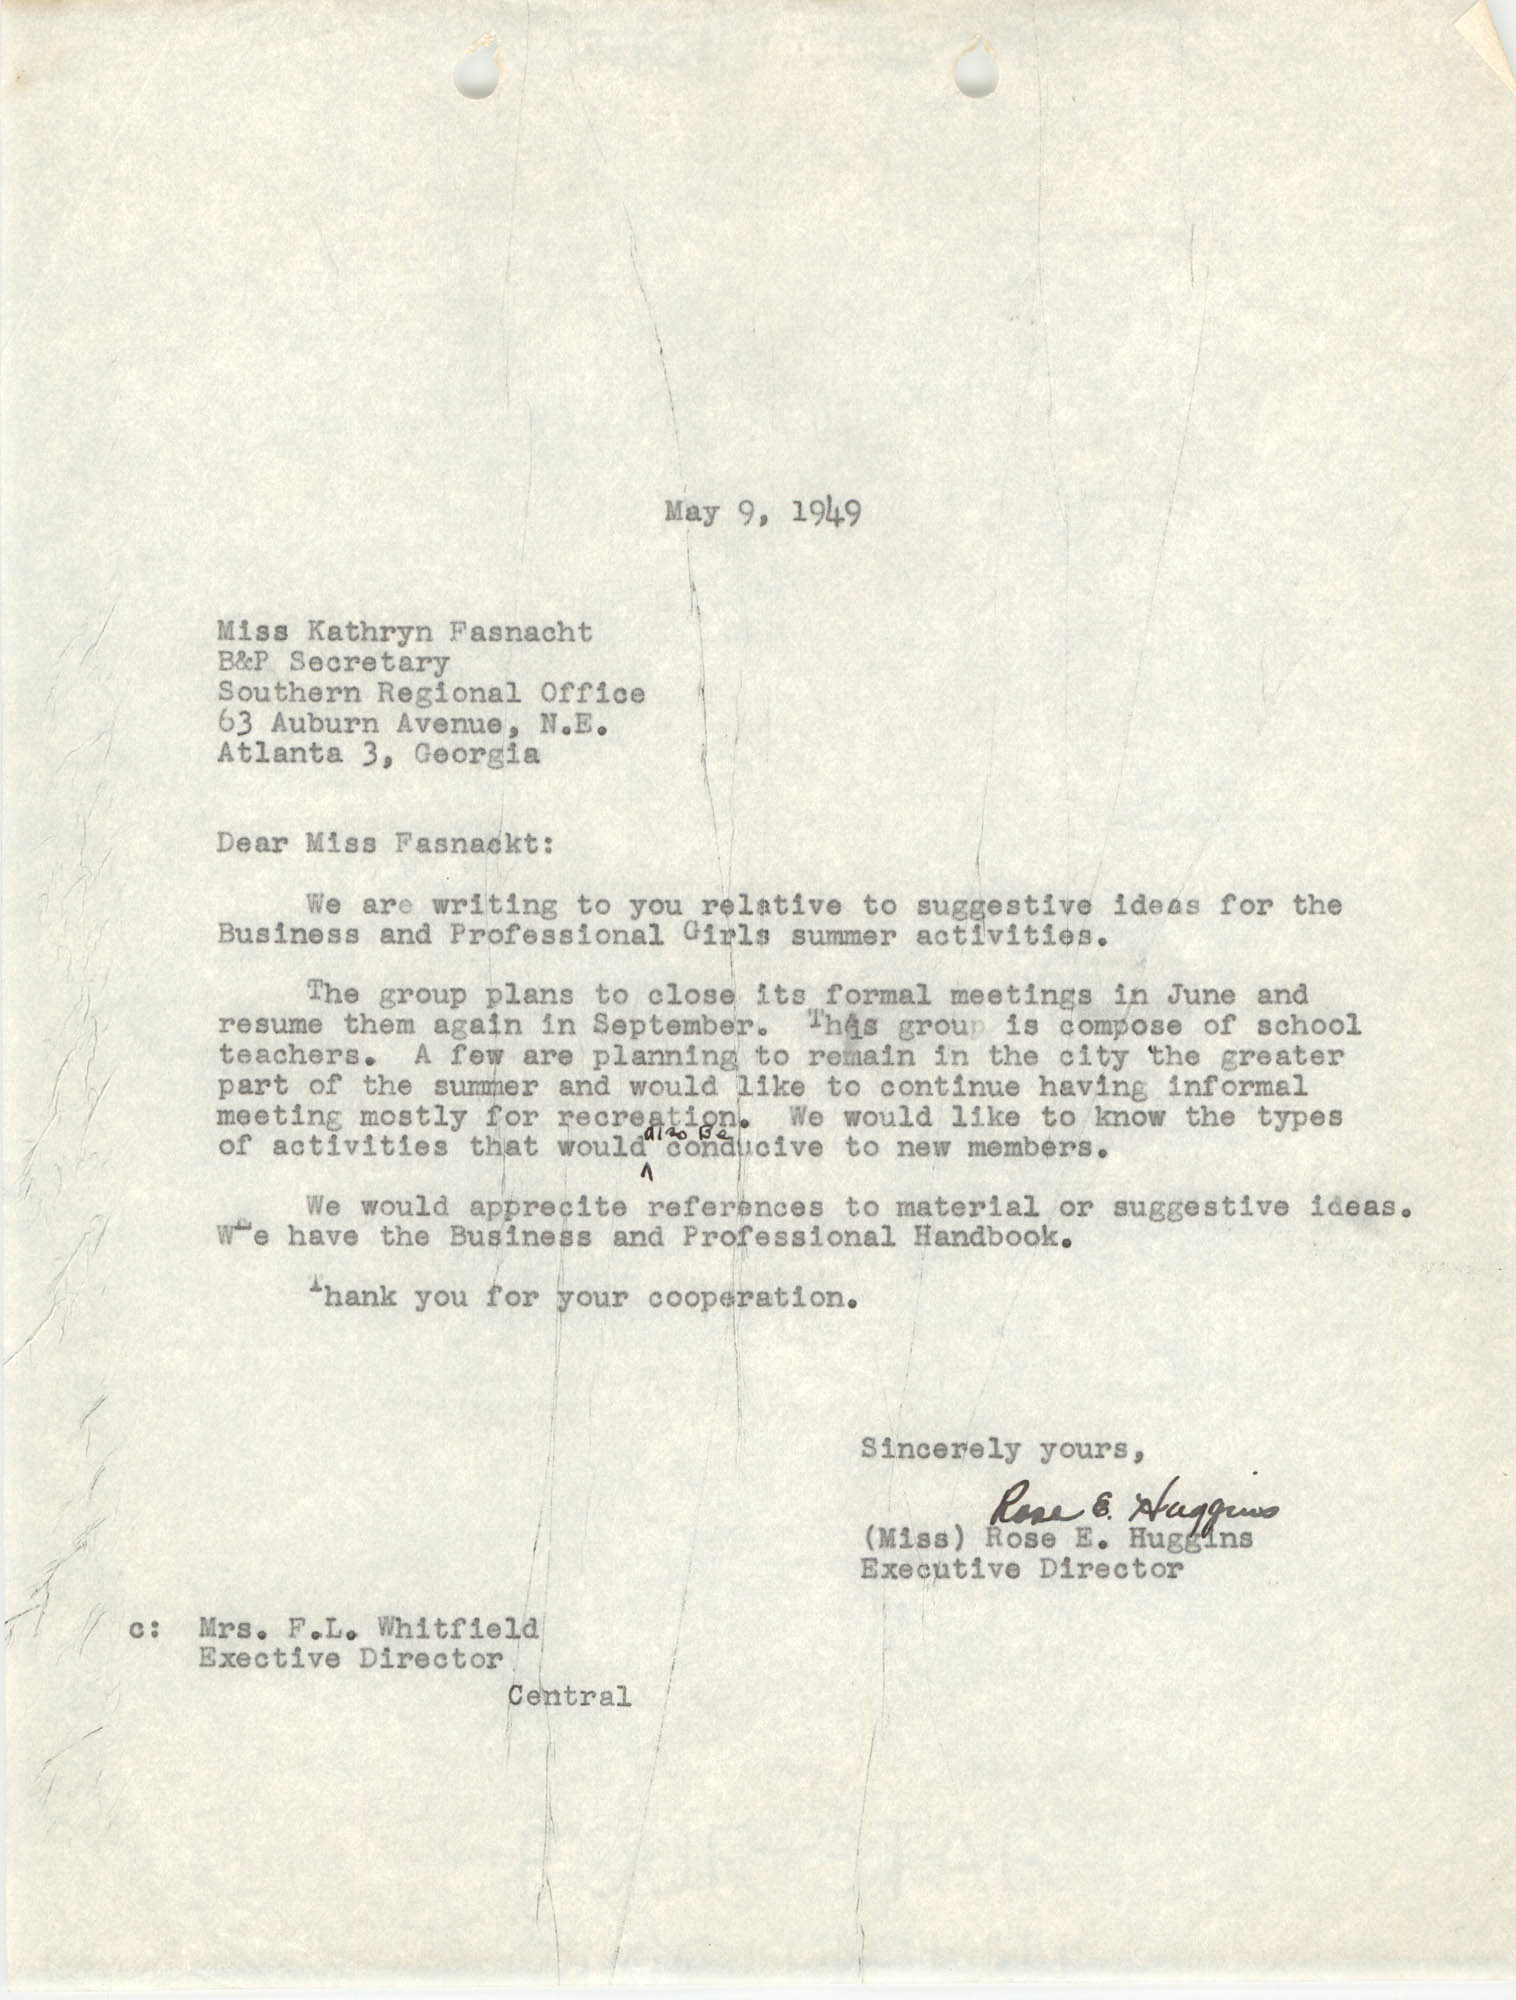 Letter from Rose E. Huggins to Kathryn, Fasnacht, May 9, 1949